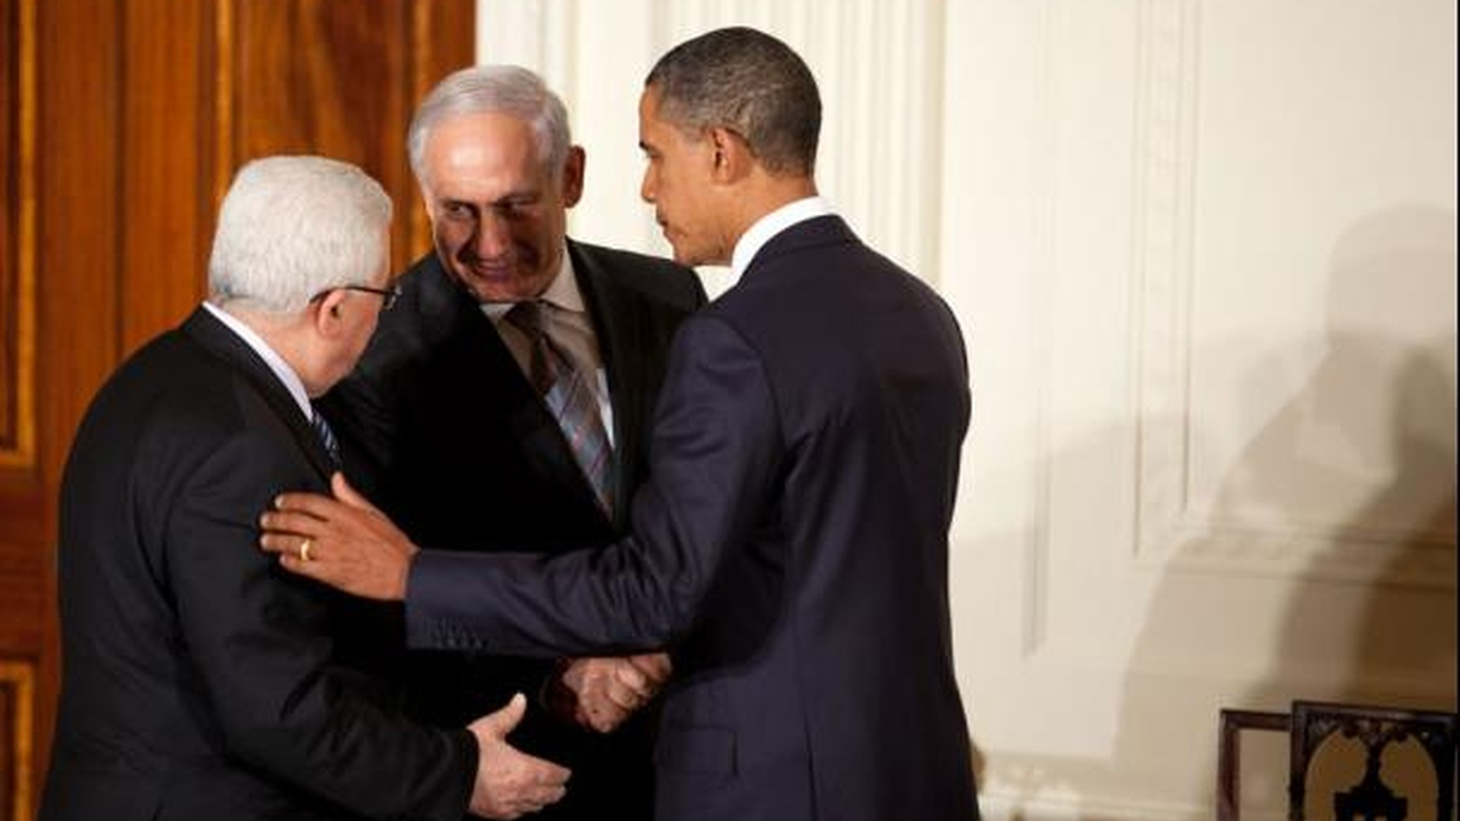 Palestinian President Mahmoud Abbas and Israeli Prime Minister Benjamin Netanyahu are together again for the first time in almost two years. How long will it last? What's the role of Iran? How great is the risk for Obama? Also, another off-shore explosion in the Gulf of Mexico, and a British view of Tony Blair's new memoir.